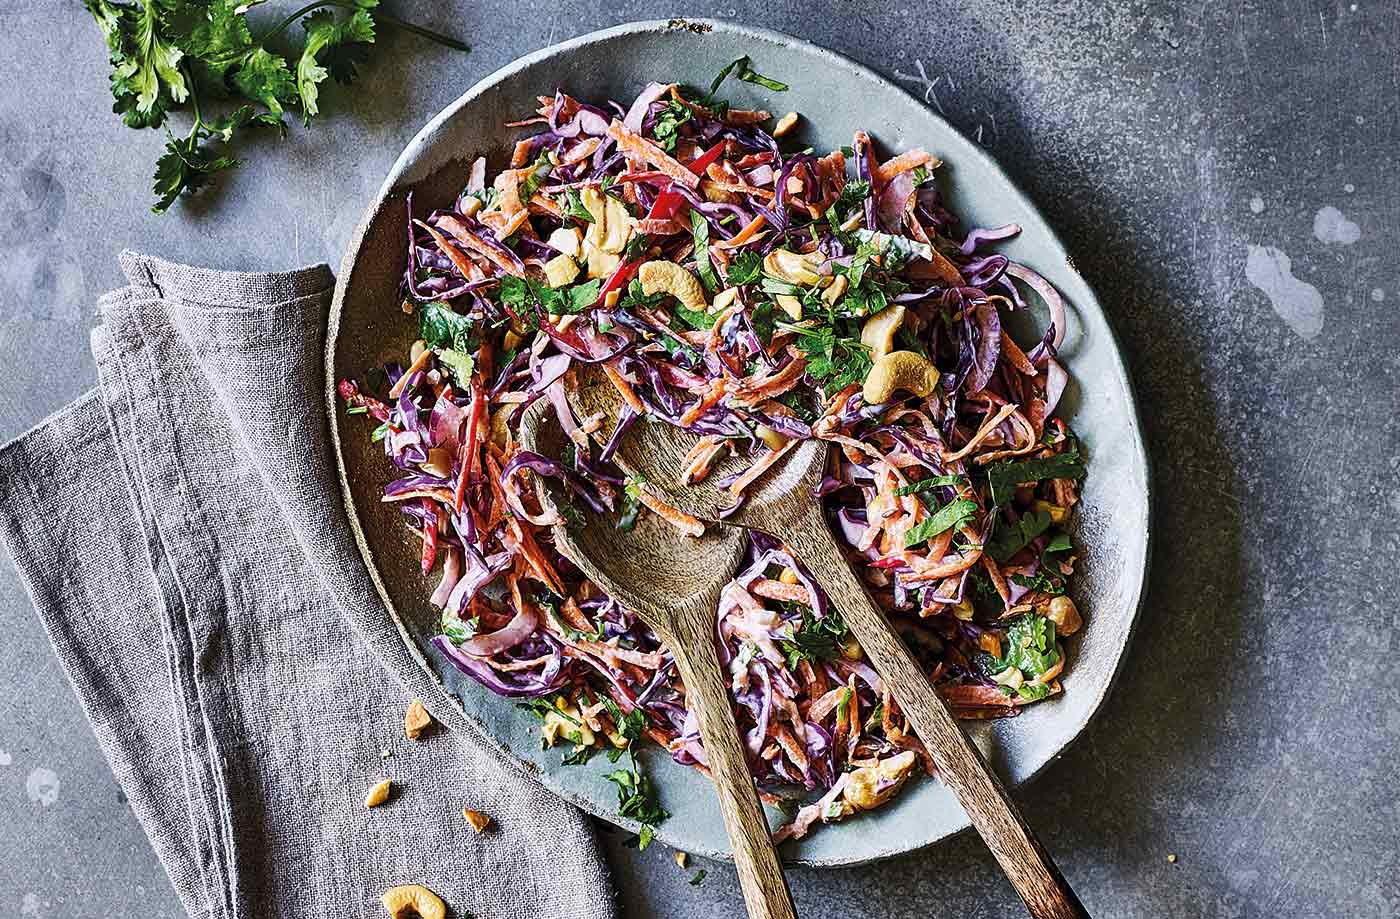 Spiced Indian slaw recipe